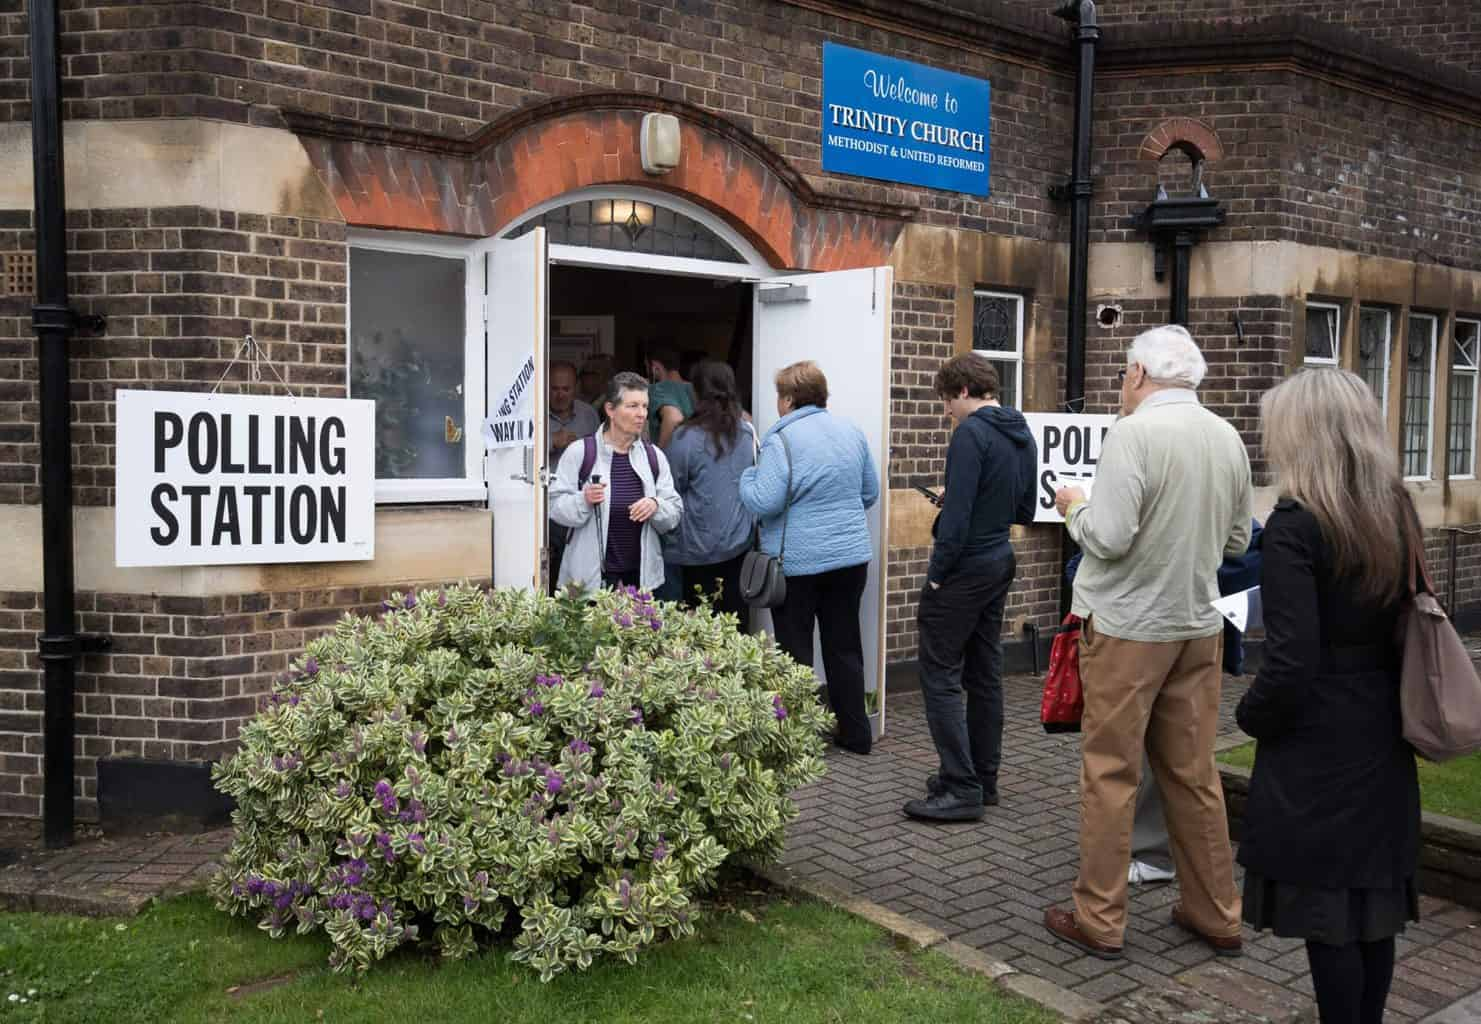 British people voting in the 2016 Brexit referendum.